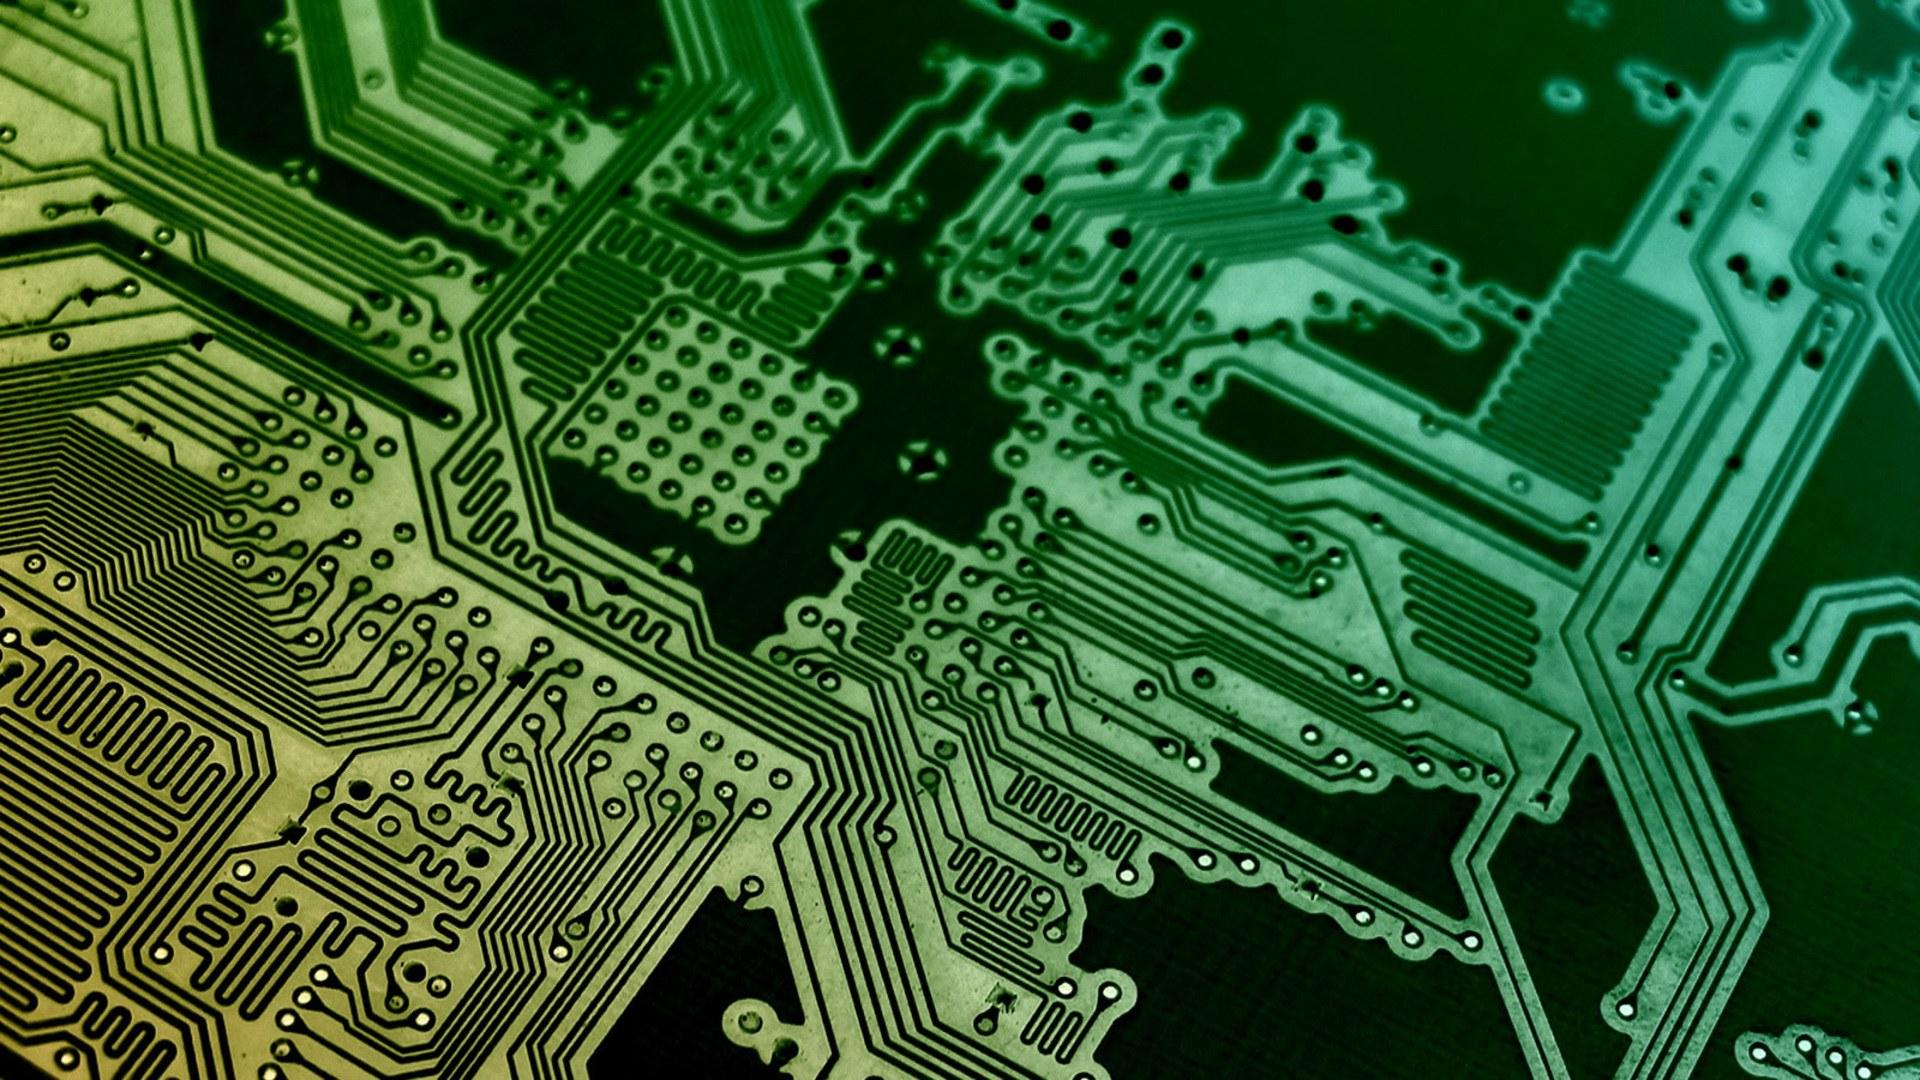 electronic circuit wallpapers top free electronic circuit1300x1300 hand on circuit board